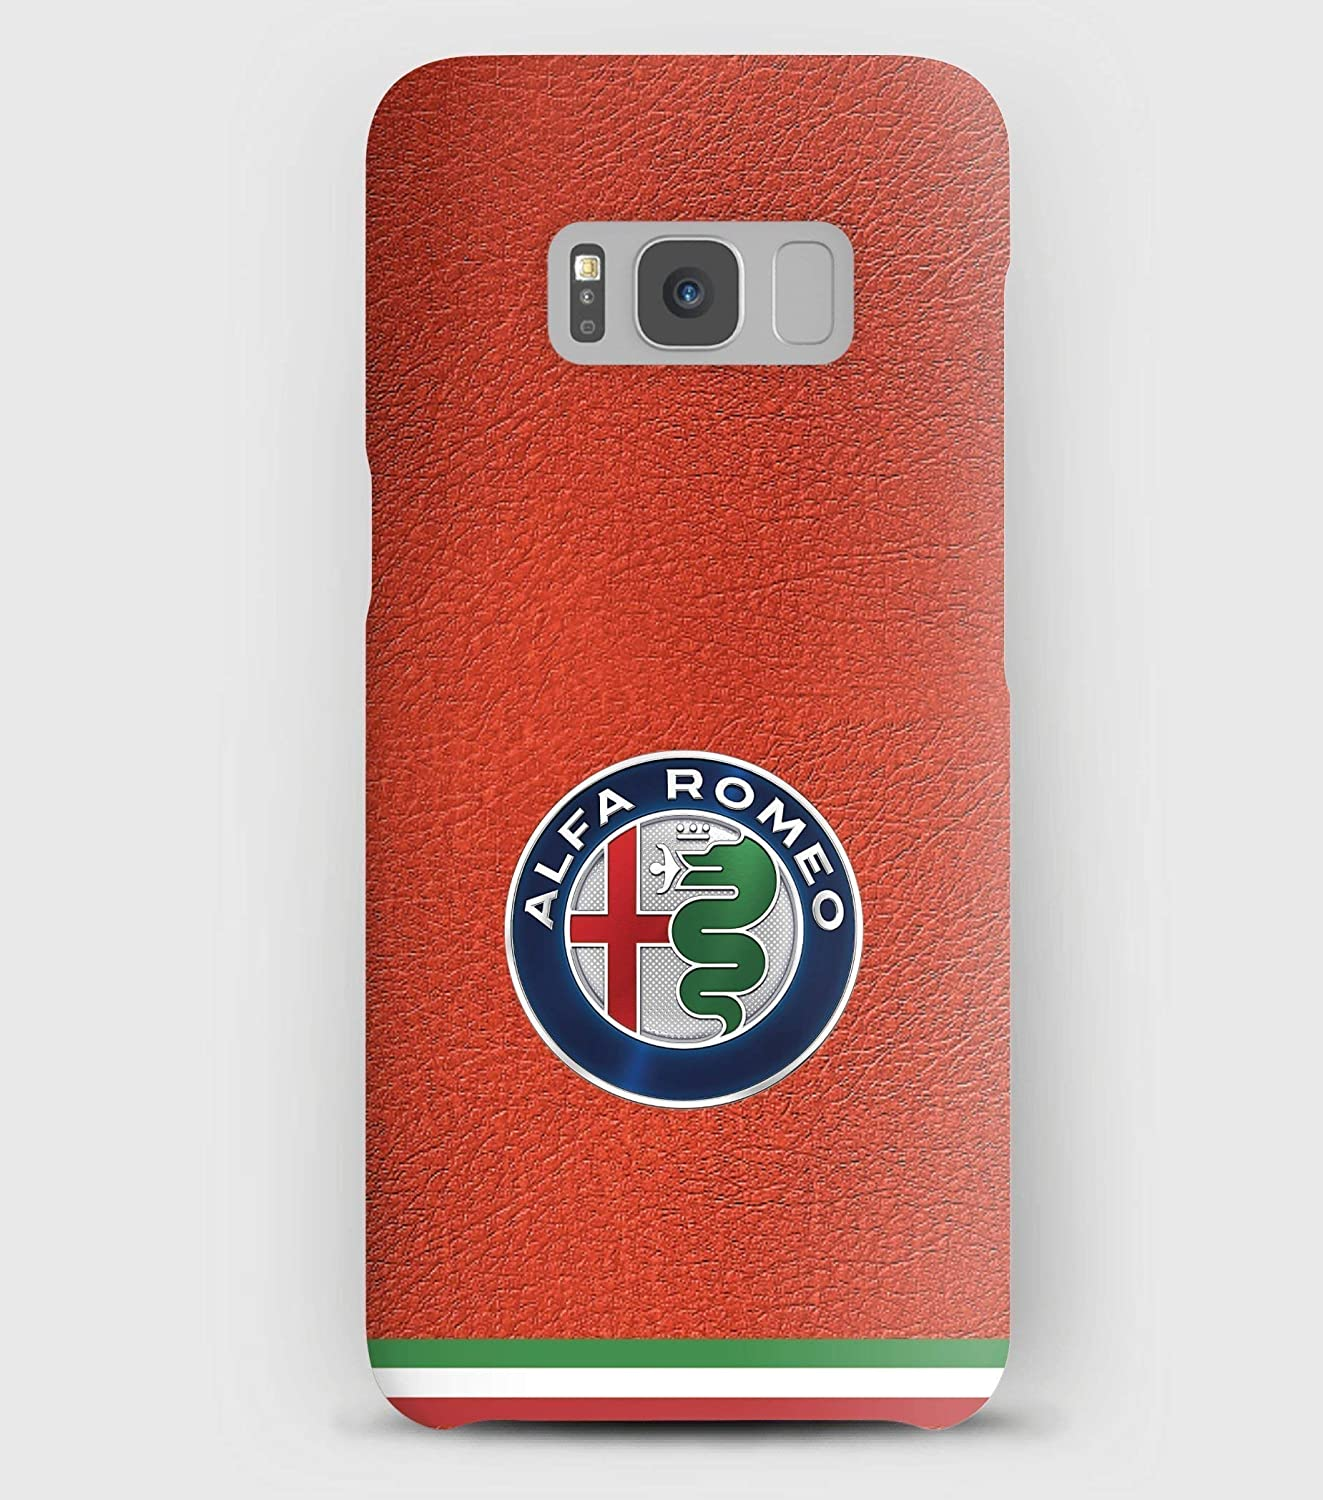 Leather & Alfa Romeo cover Samsung S5, S6, S7, S8, A3, A5, A8, J3,J5, Note 5,8,9